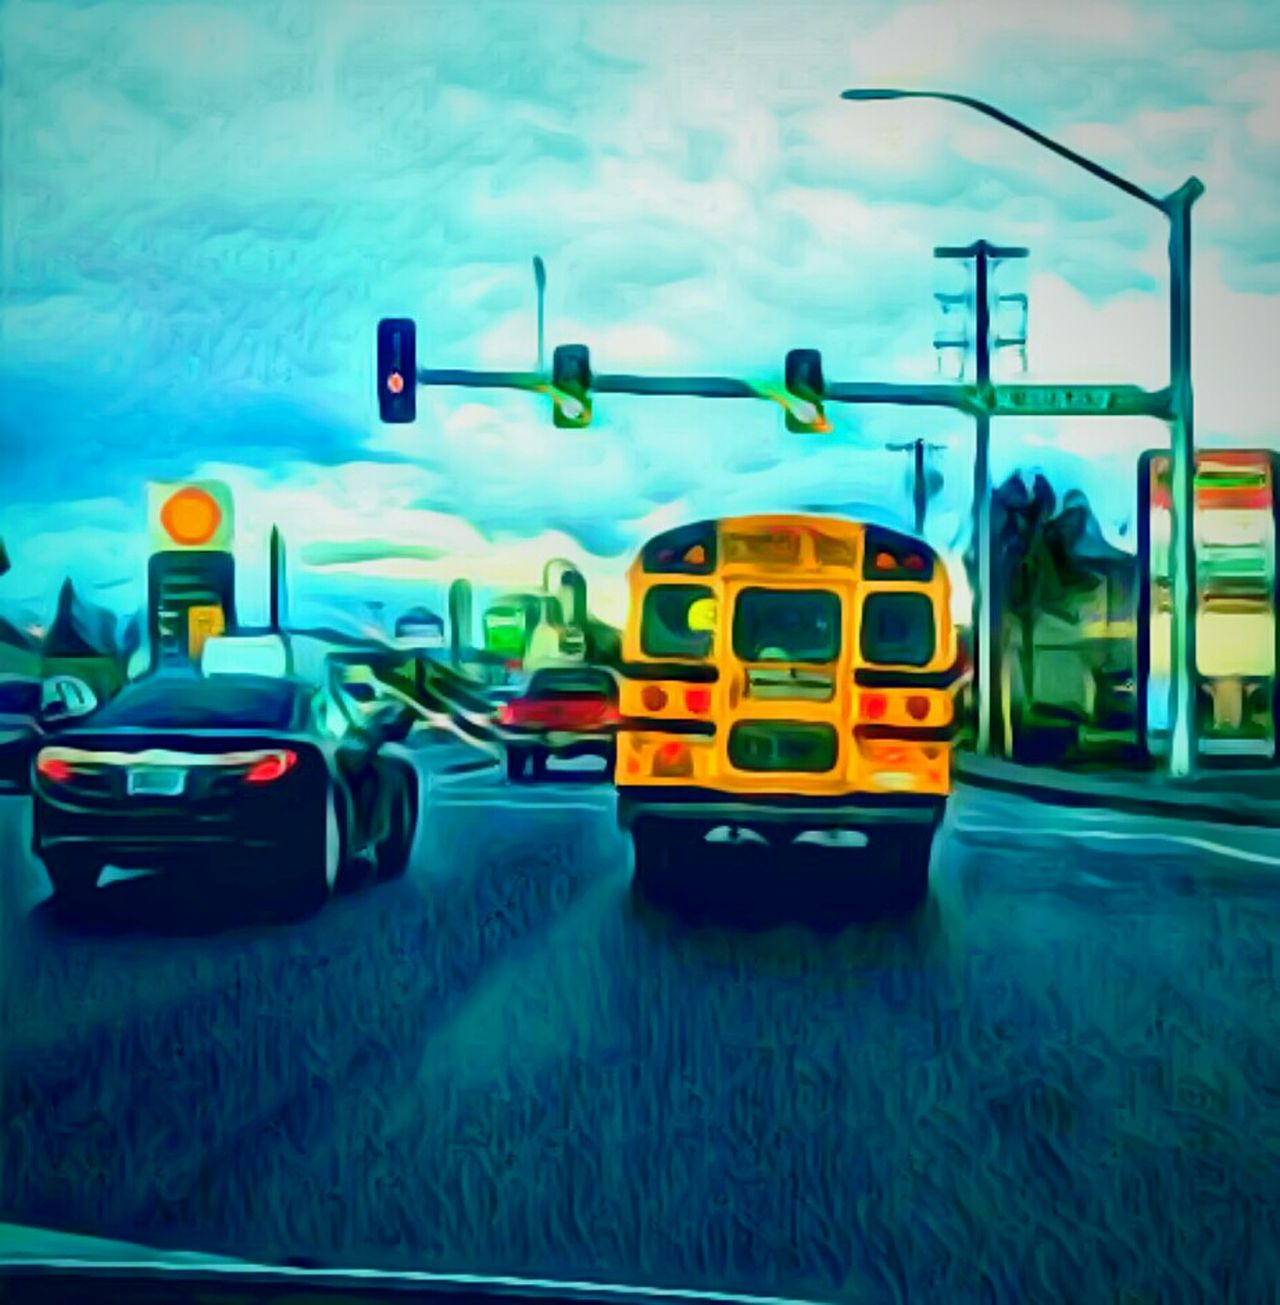 Transportation Mode Of Transport Bus Ride Riding The Bus Cloud - Sky Fall Is Here. How's The Weather Today? The Way Forward The Week On EyeEem EyeEm Best Edits Outdoors Photograpghy  I LOVE PHOTOGRAPHY EyeEm Photo Of The Day Eyeem Market Place EyeEm Master Class Telling Stories Differtenly Multi Colored Photography Outdoors Elementary School Field Trip ♡ Ont The Way Going To School Yellow Bus On Road Vote For HillaryClinton